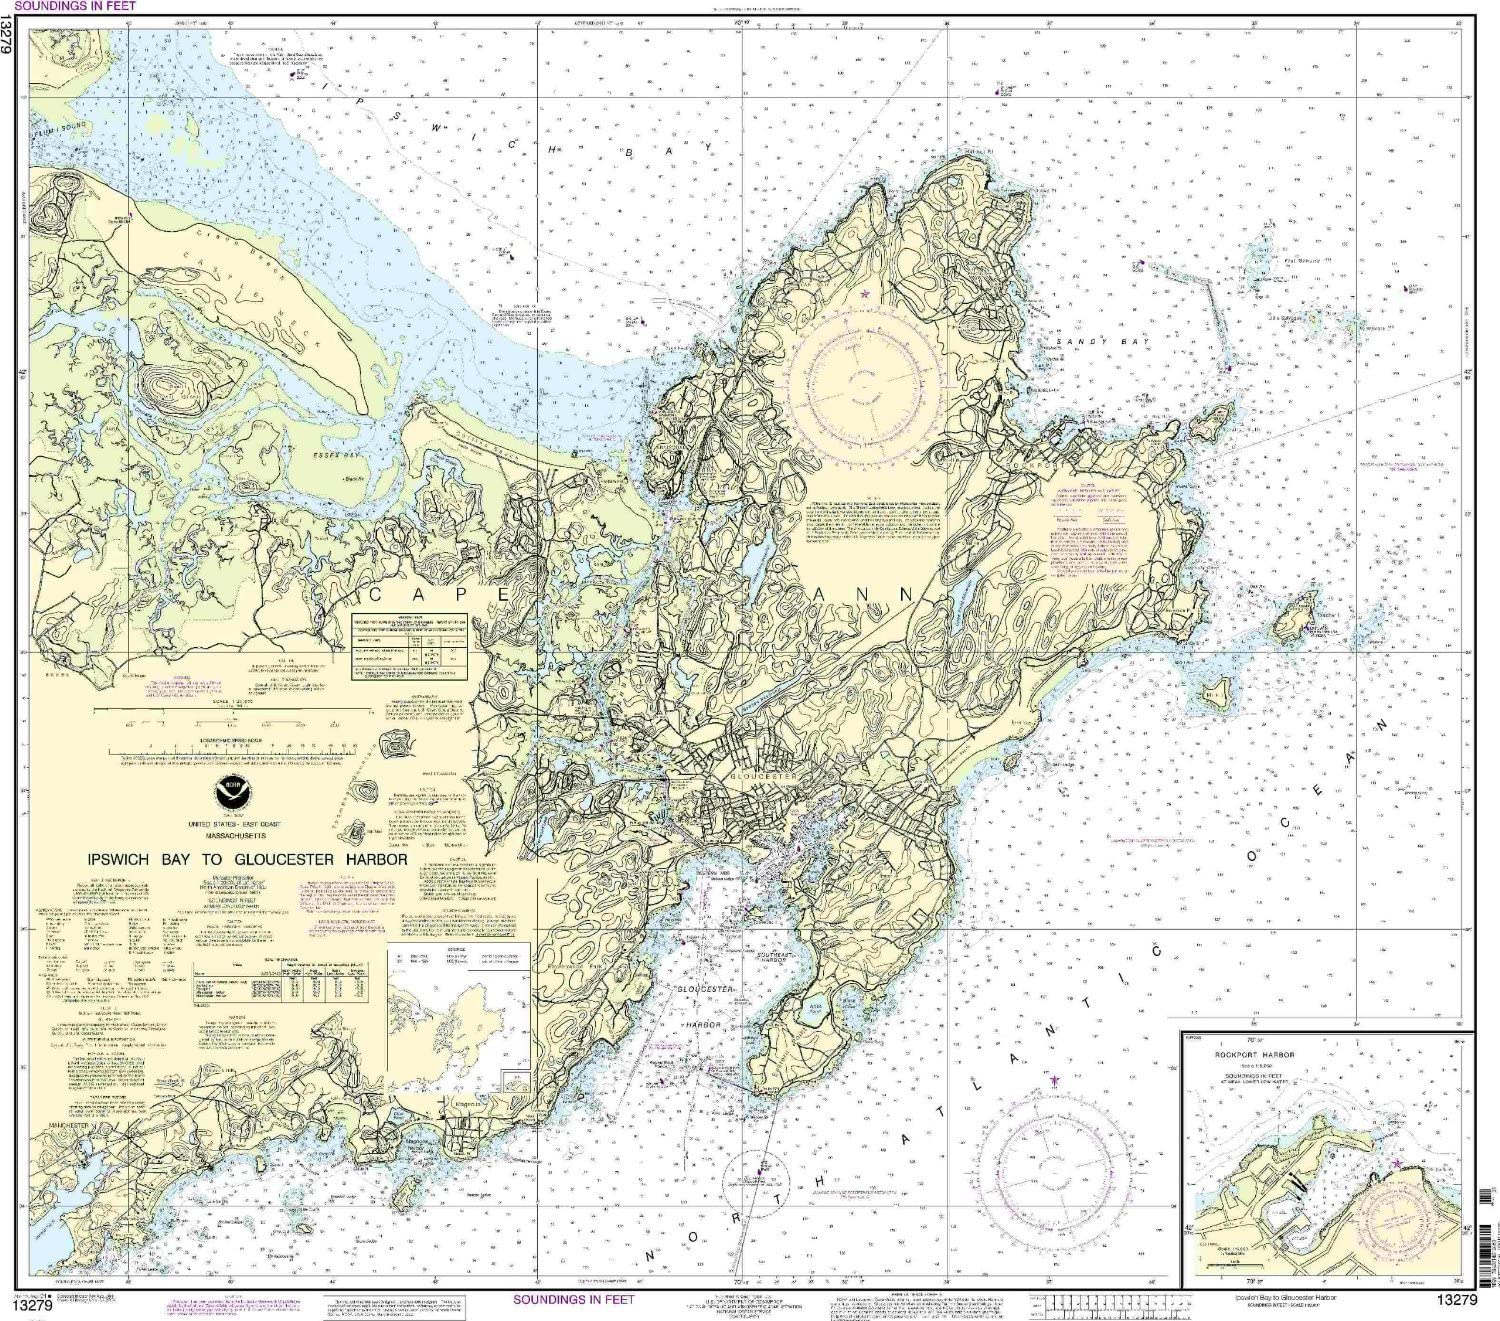 Las Vegas Mall NOAA 13279-Ipswich Bay Special Campaign to Harbor Rockport Gloucester